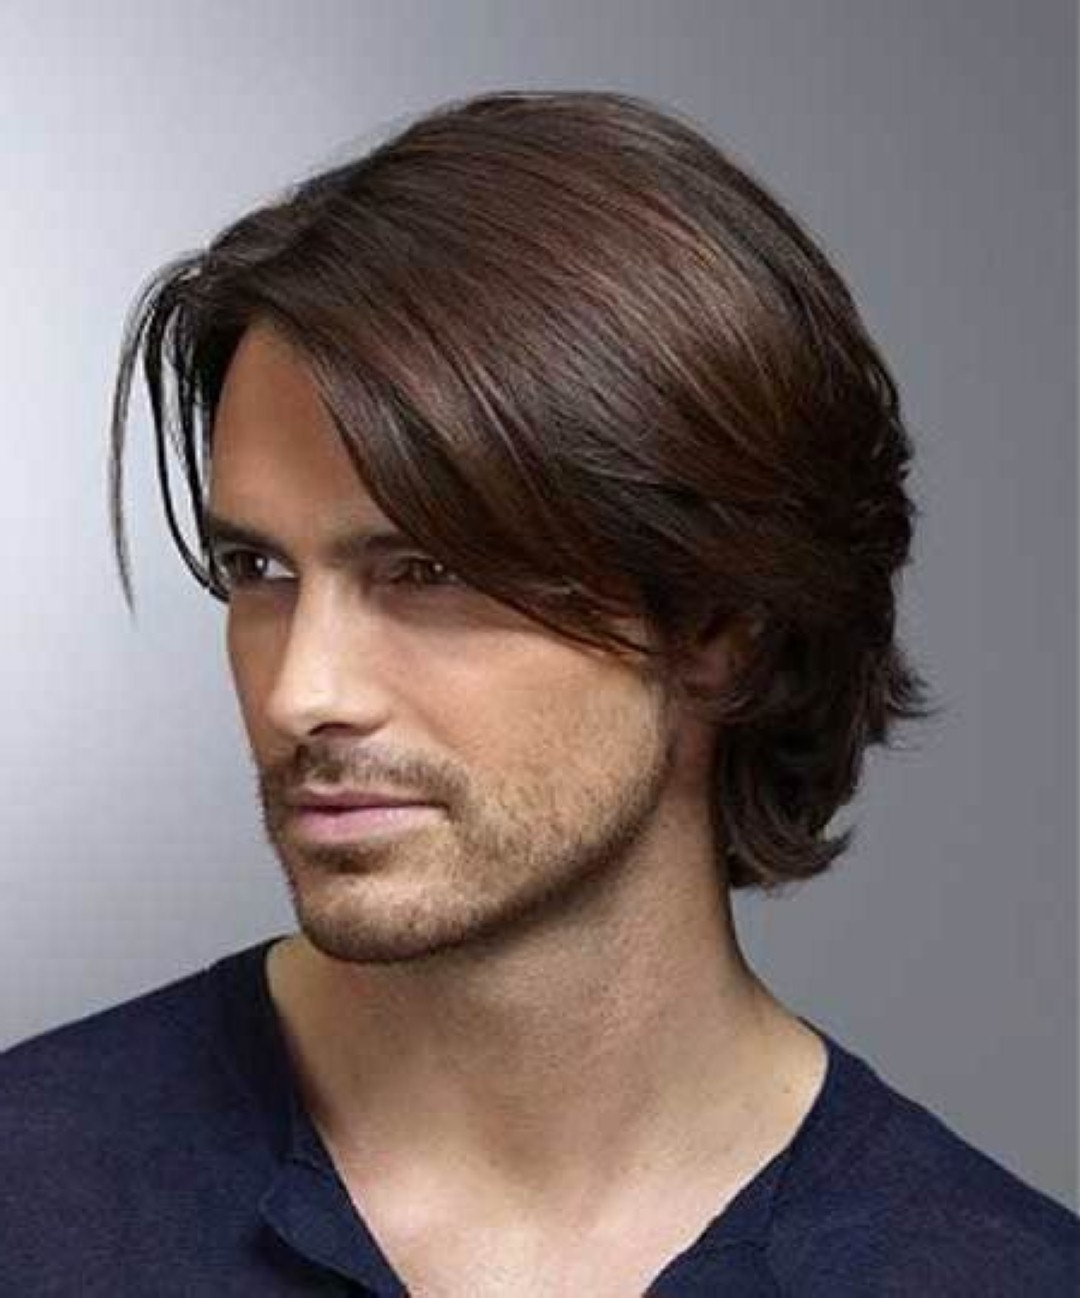 Medium Length Hairstyles Fine Straight Hair – Hairstyle For Women & Man Pertaining To Newest Medium Hairstyles For Men With Fine Straight Hair (View 3 of 20)